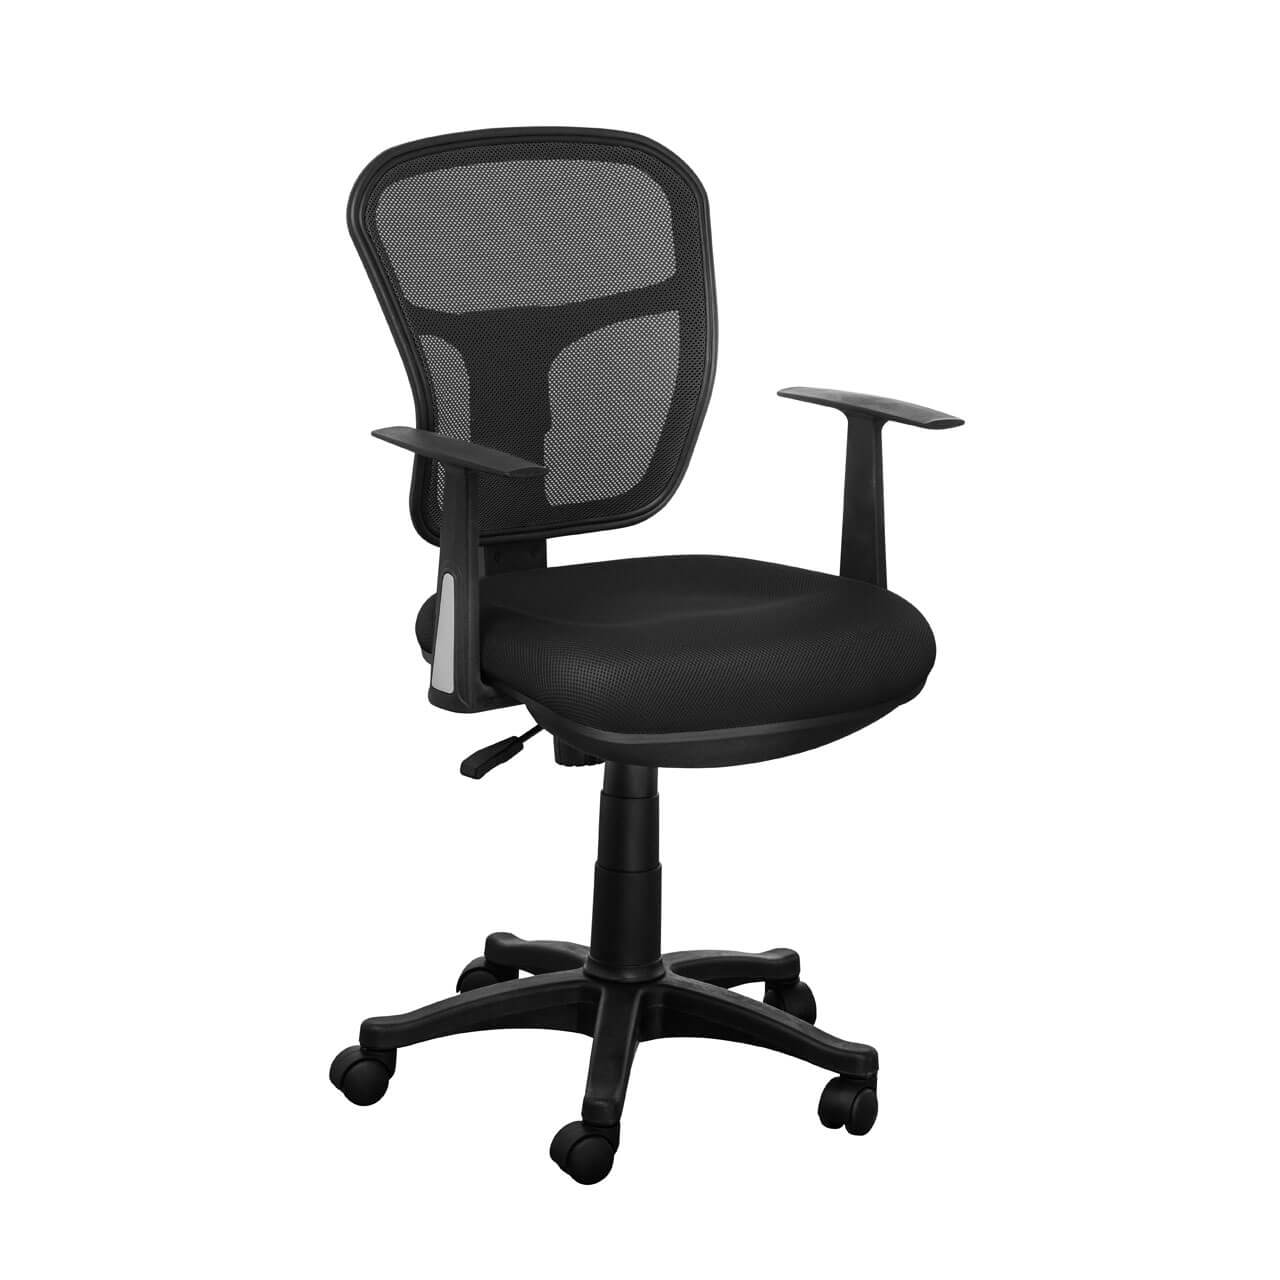 Luna Black Mesh Office Chair